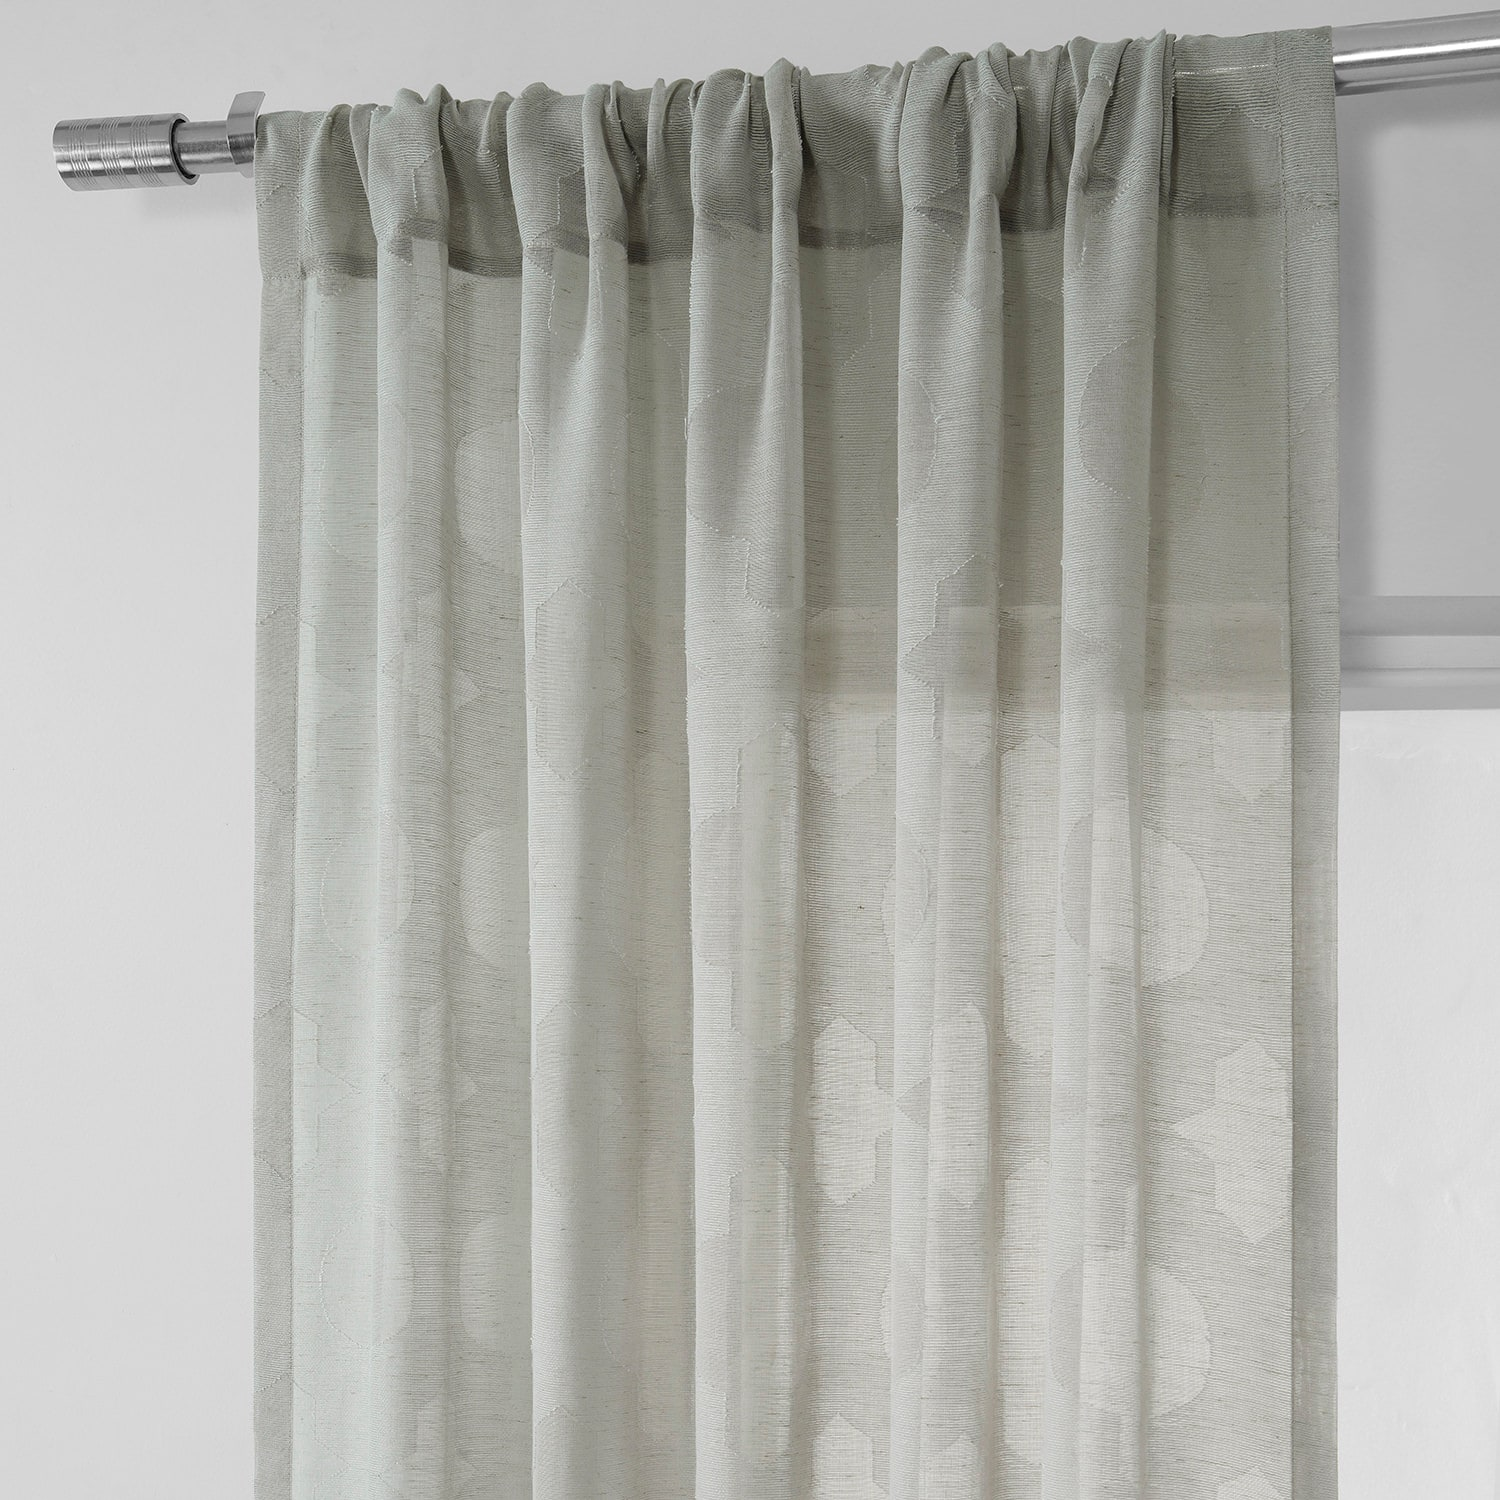 Calais Tile Grey Patterned Linen Sheer Curtain